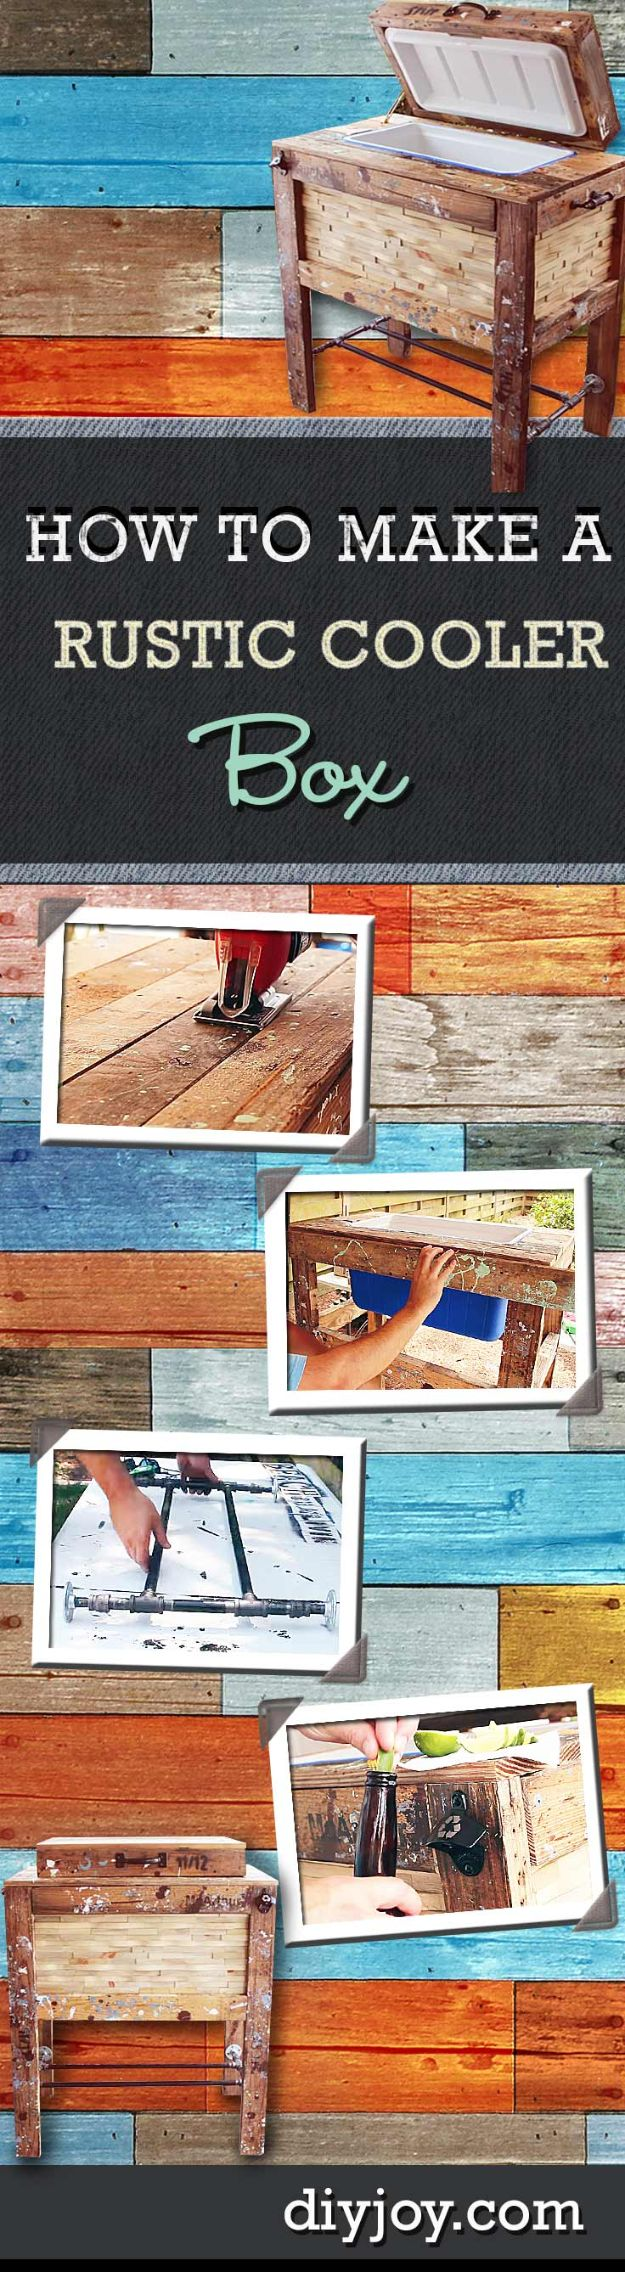 DIY Outdoor Furniture - Rustic Cooler Box - Cheap and Easy Ideas for Patio and Porch Seating and Tables, Chairs, Sofas - How To Make Outdoor Furniture Projects on A Budget - Fmaily Friendly Decor Kids Love - Quick Projects to Make This Weekend - Swings, Pallet Tables, End Tables, Rocking Chairs, Daybeds and Benches http://diyjoy.com/diy-outdoor-furniture